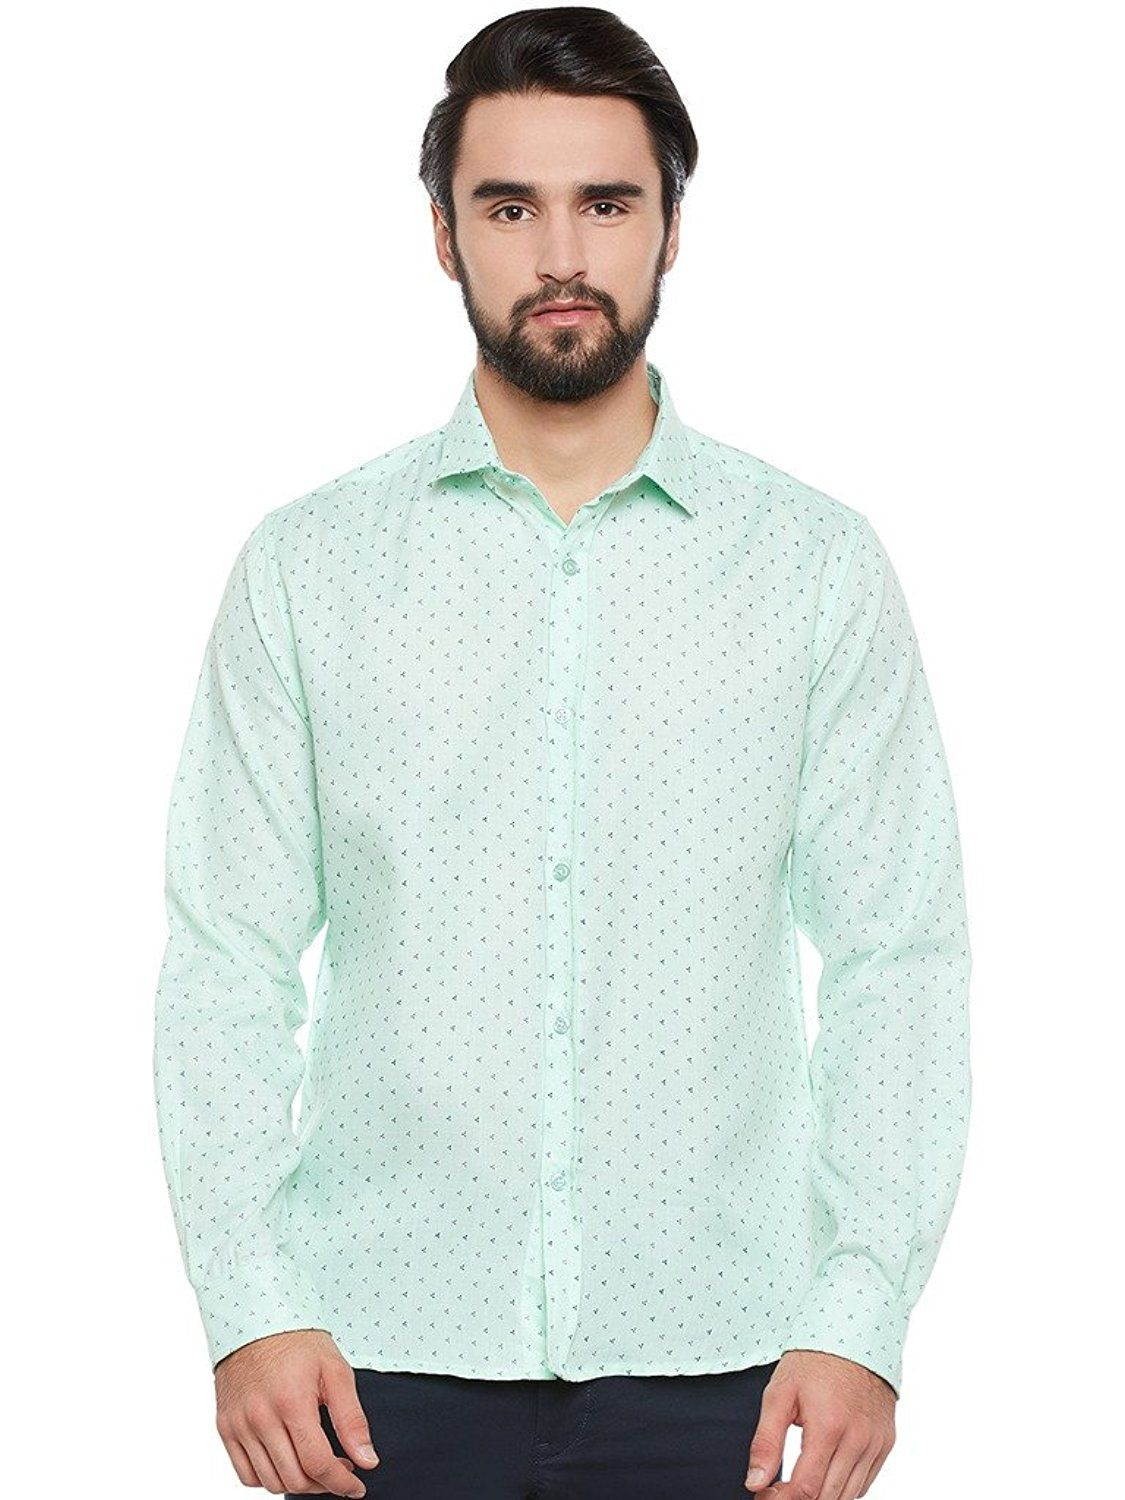 9cfdf4a6462ca Mens Shirts Online Shopping In India - BCD Tofu House